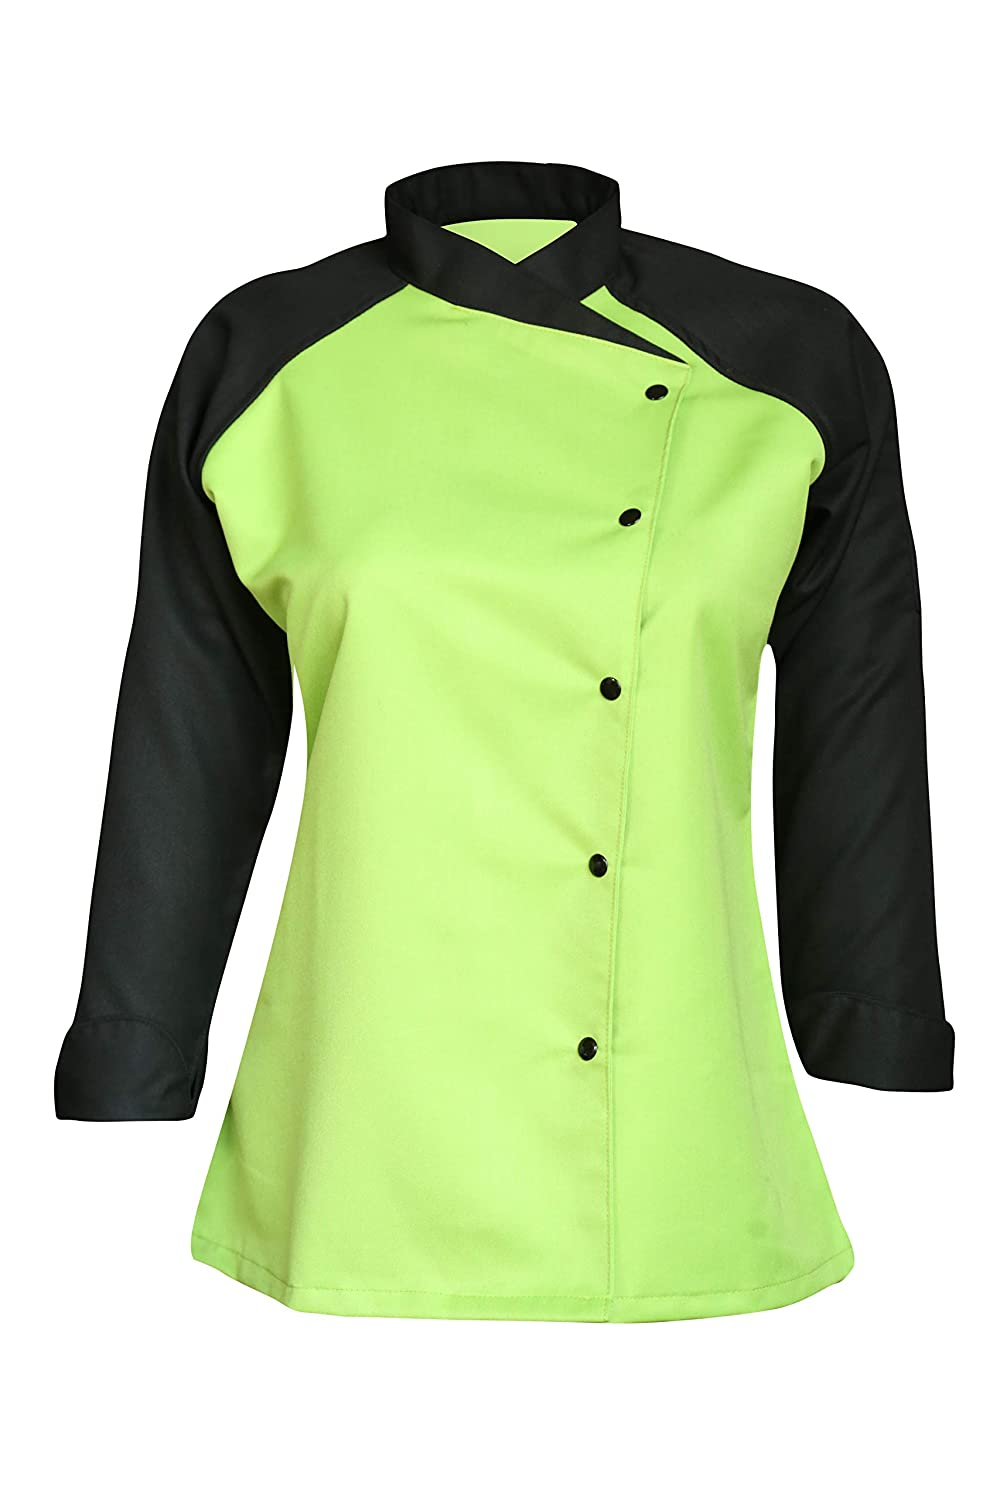 3/4 Contrast Sleeves Women's Ladies Chef's Coat Jackets By Chef Apparels (Grey, XS (To Fit Bust 32-33))